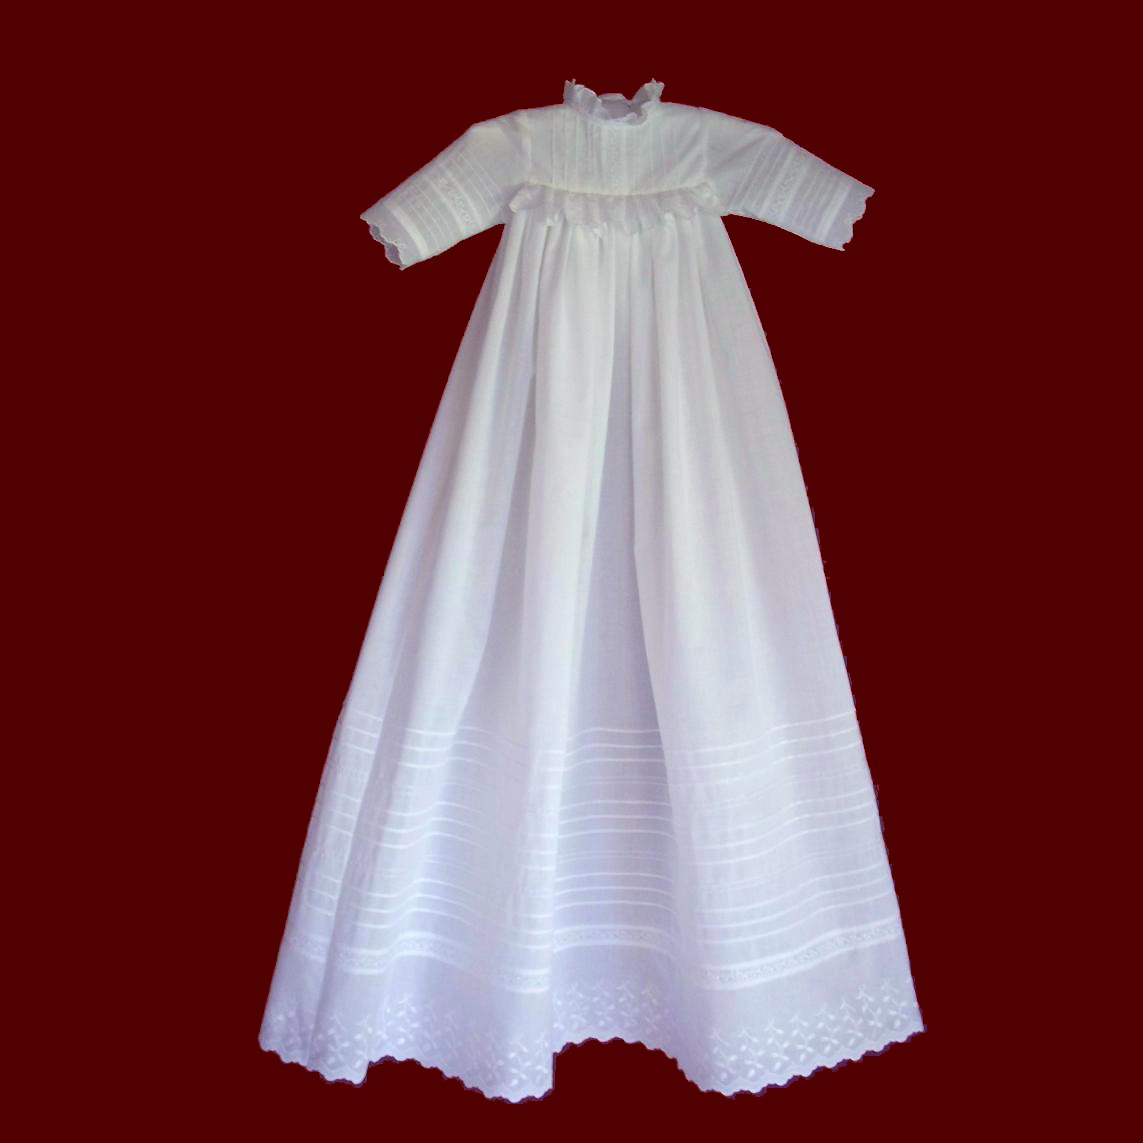 Christening Gowns From Wedding Dresses: Heirloom Christening Gown With Tucks